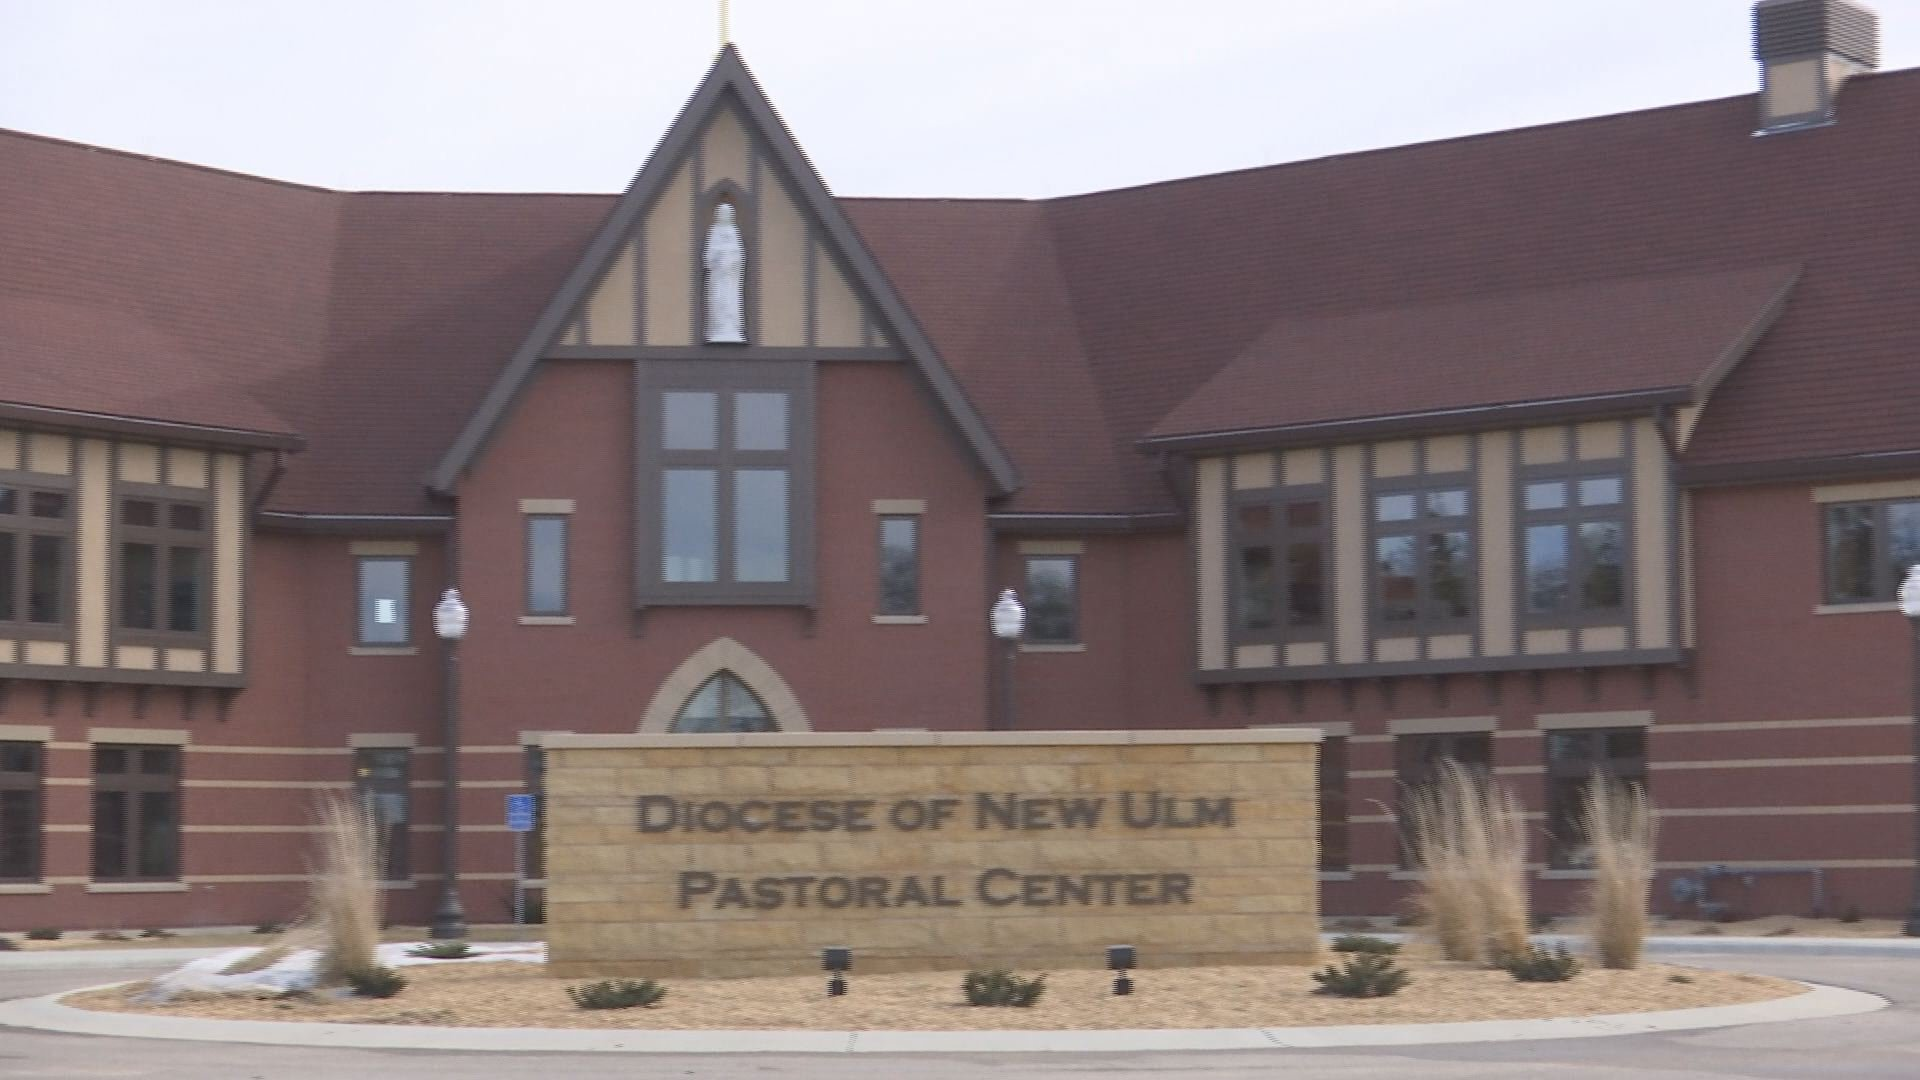 Diocese of New Ulm files for bankrupcy over sex abuse claims